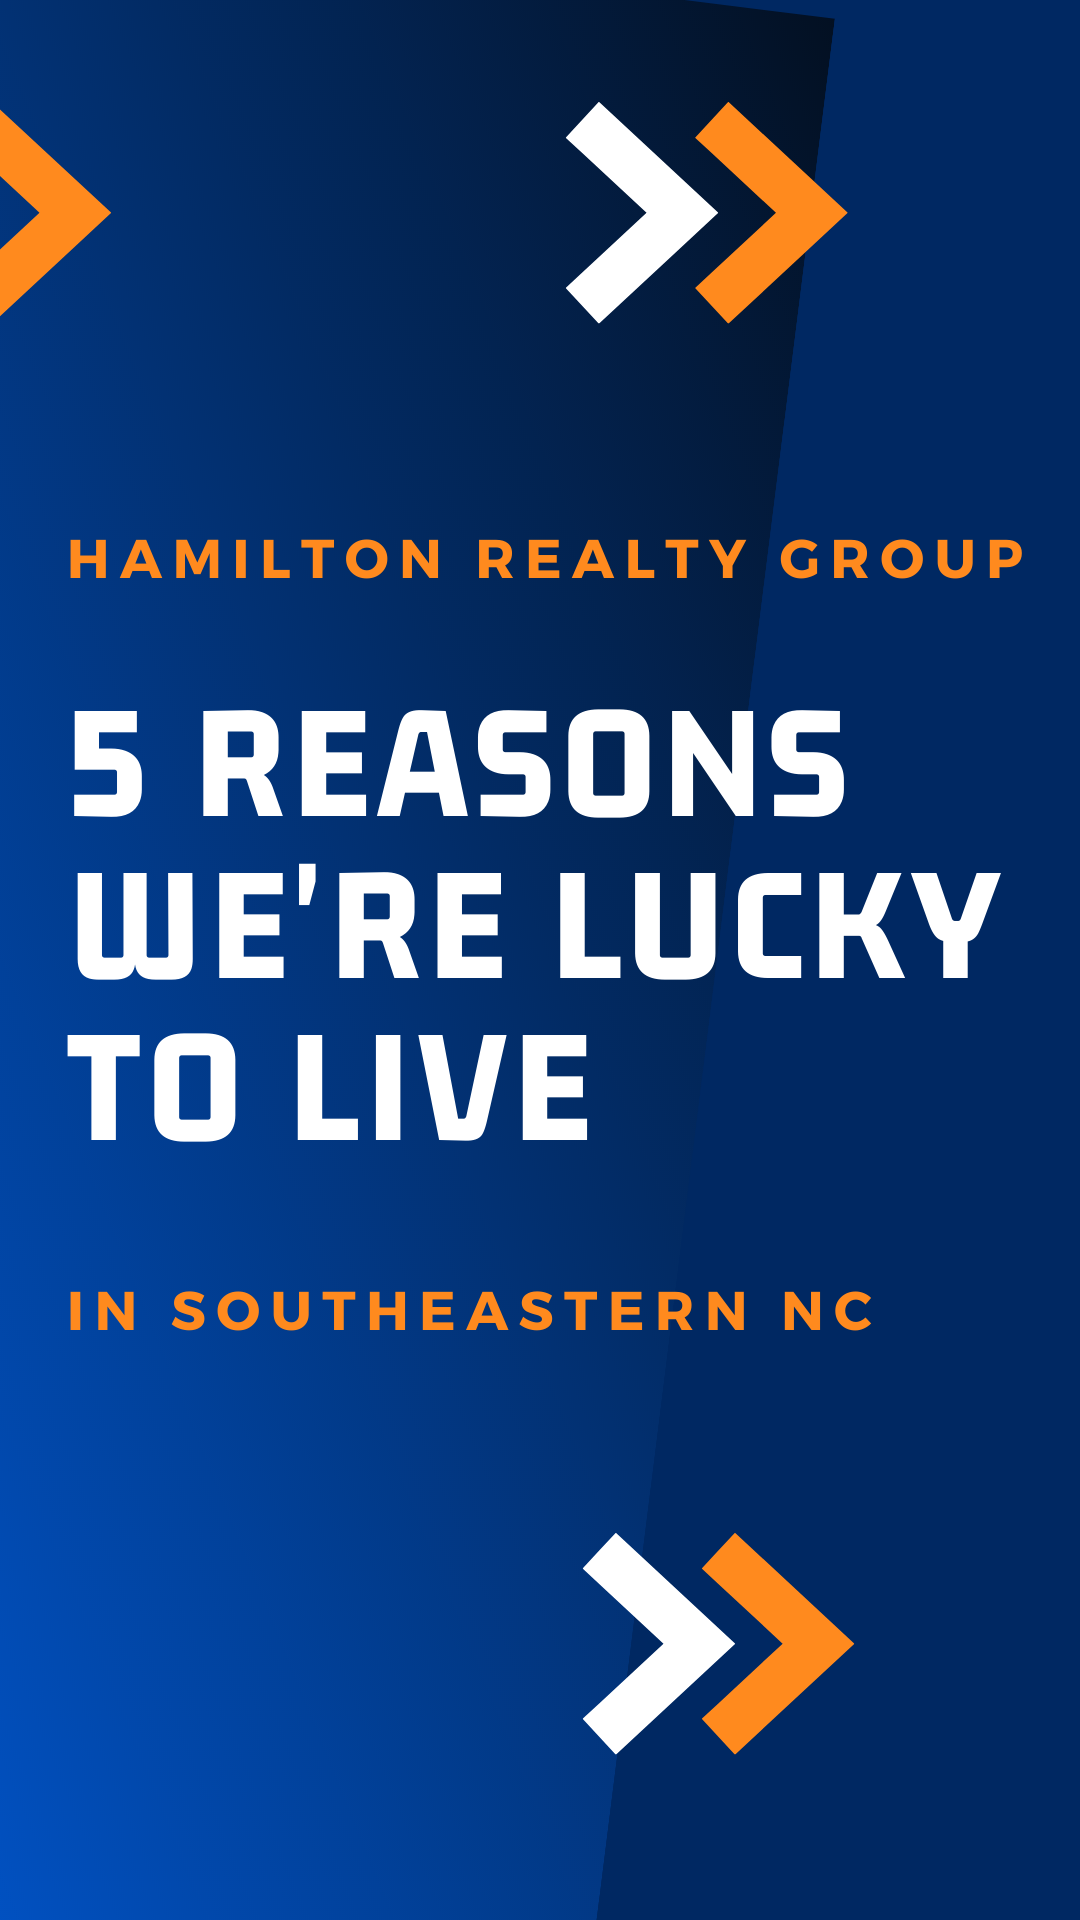 5 Reason We're Lucky to Live in Southeastern NC